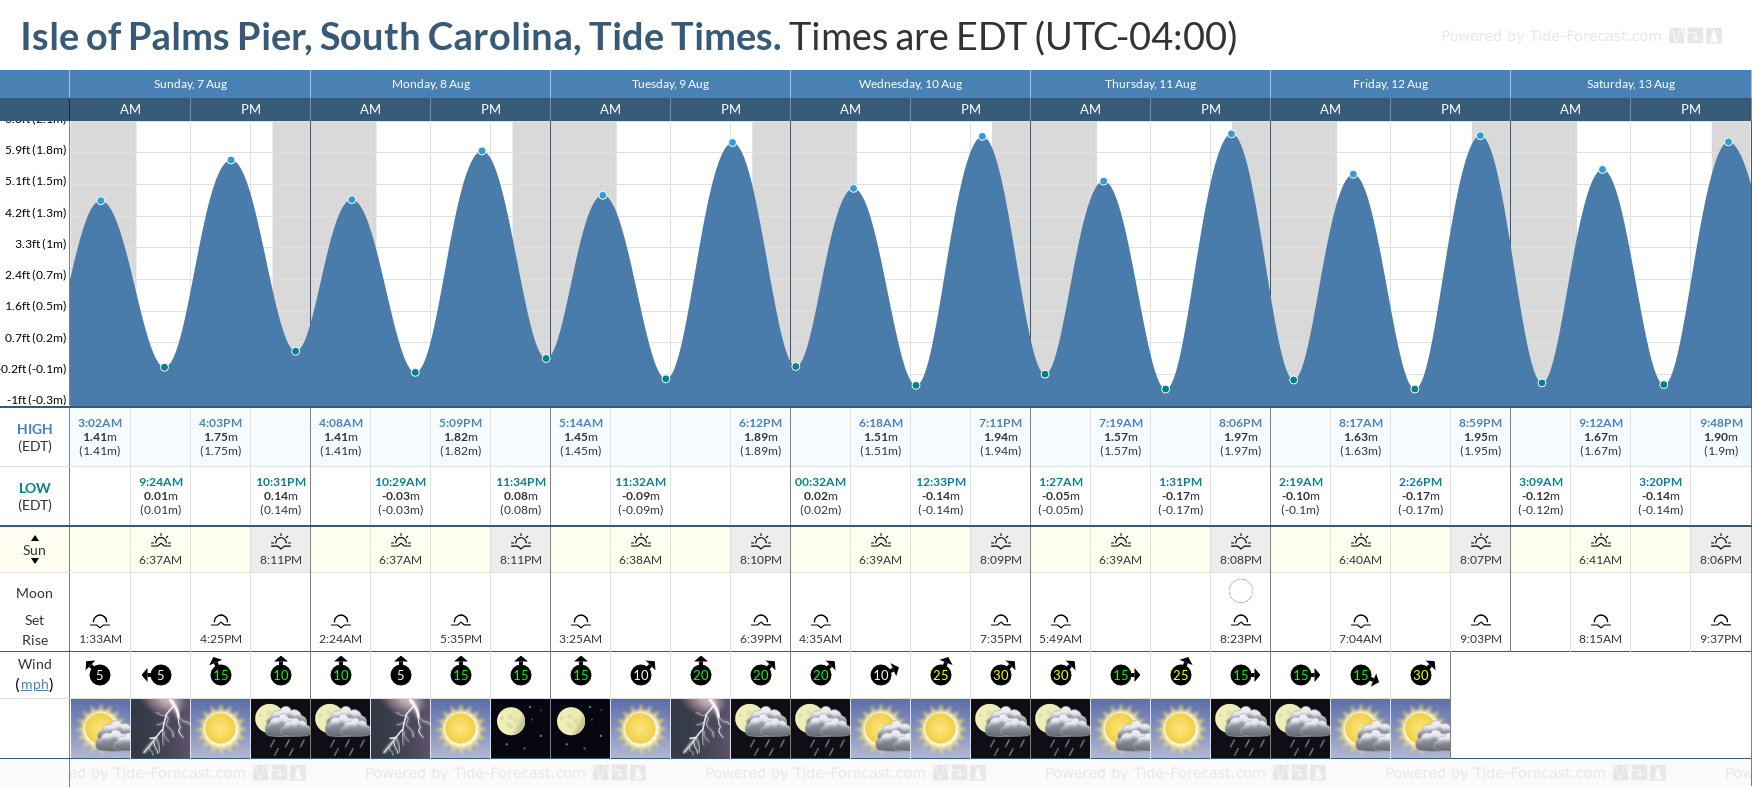 Isle of Palms Pier, South Carolina Tide Chart including high and low tide tide times for the next 7 days